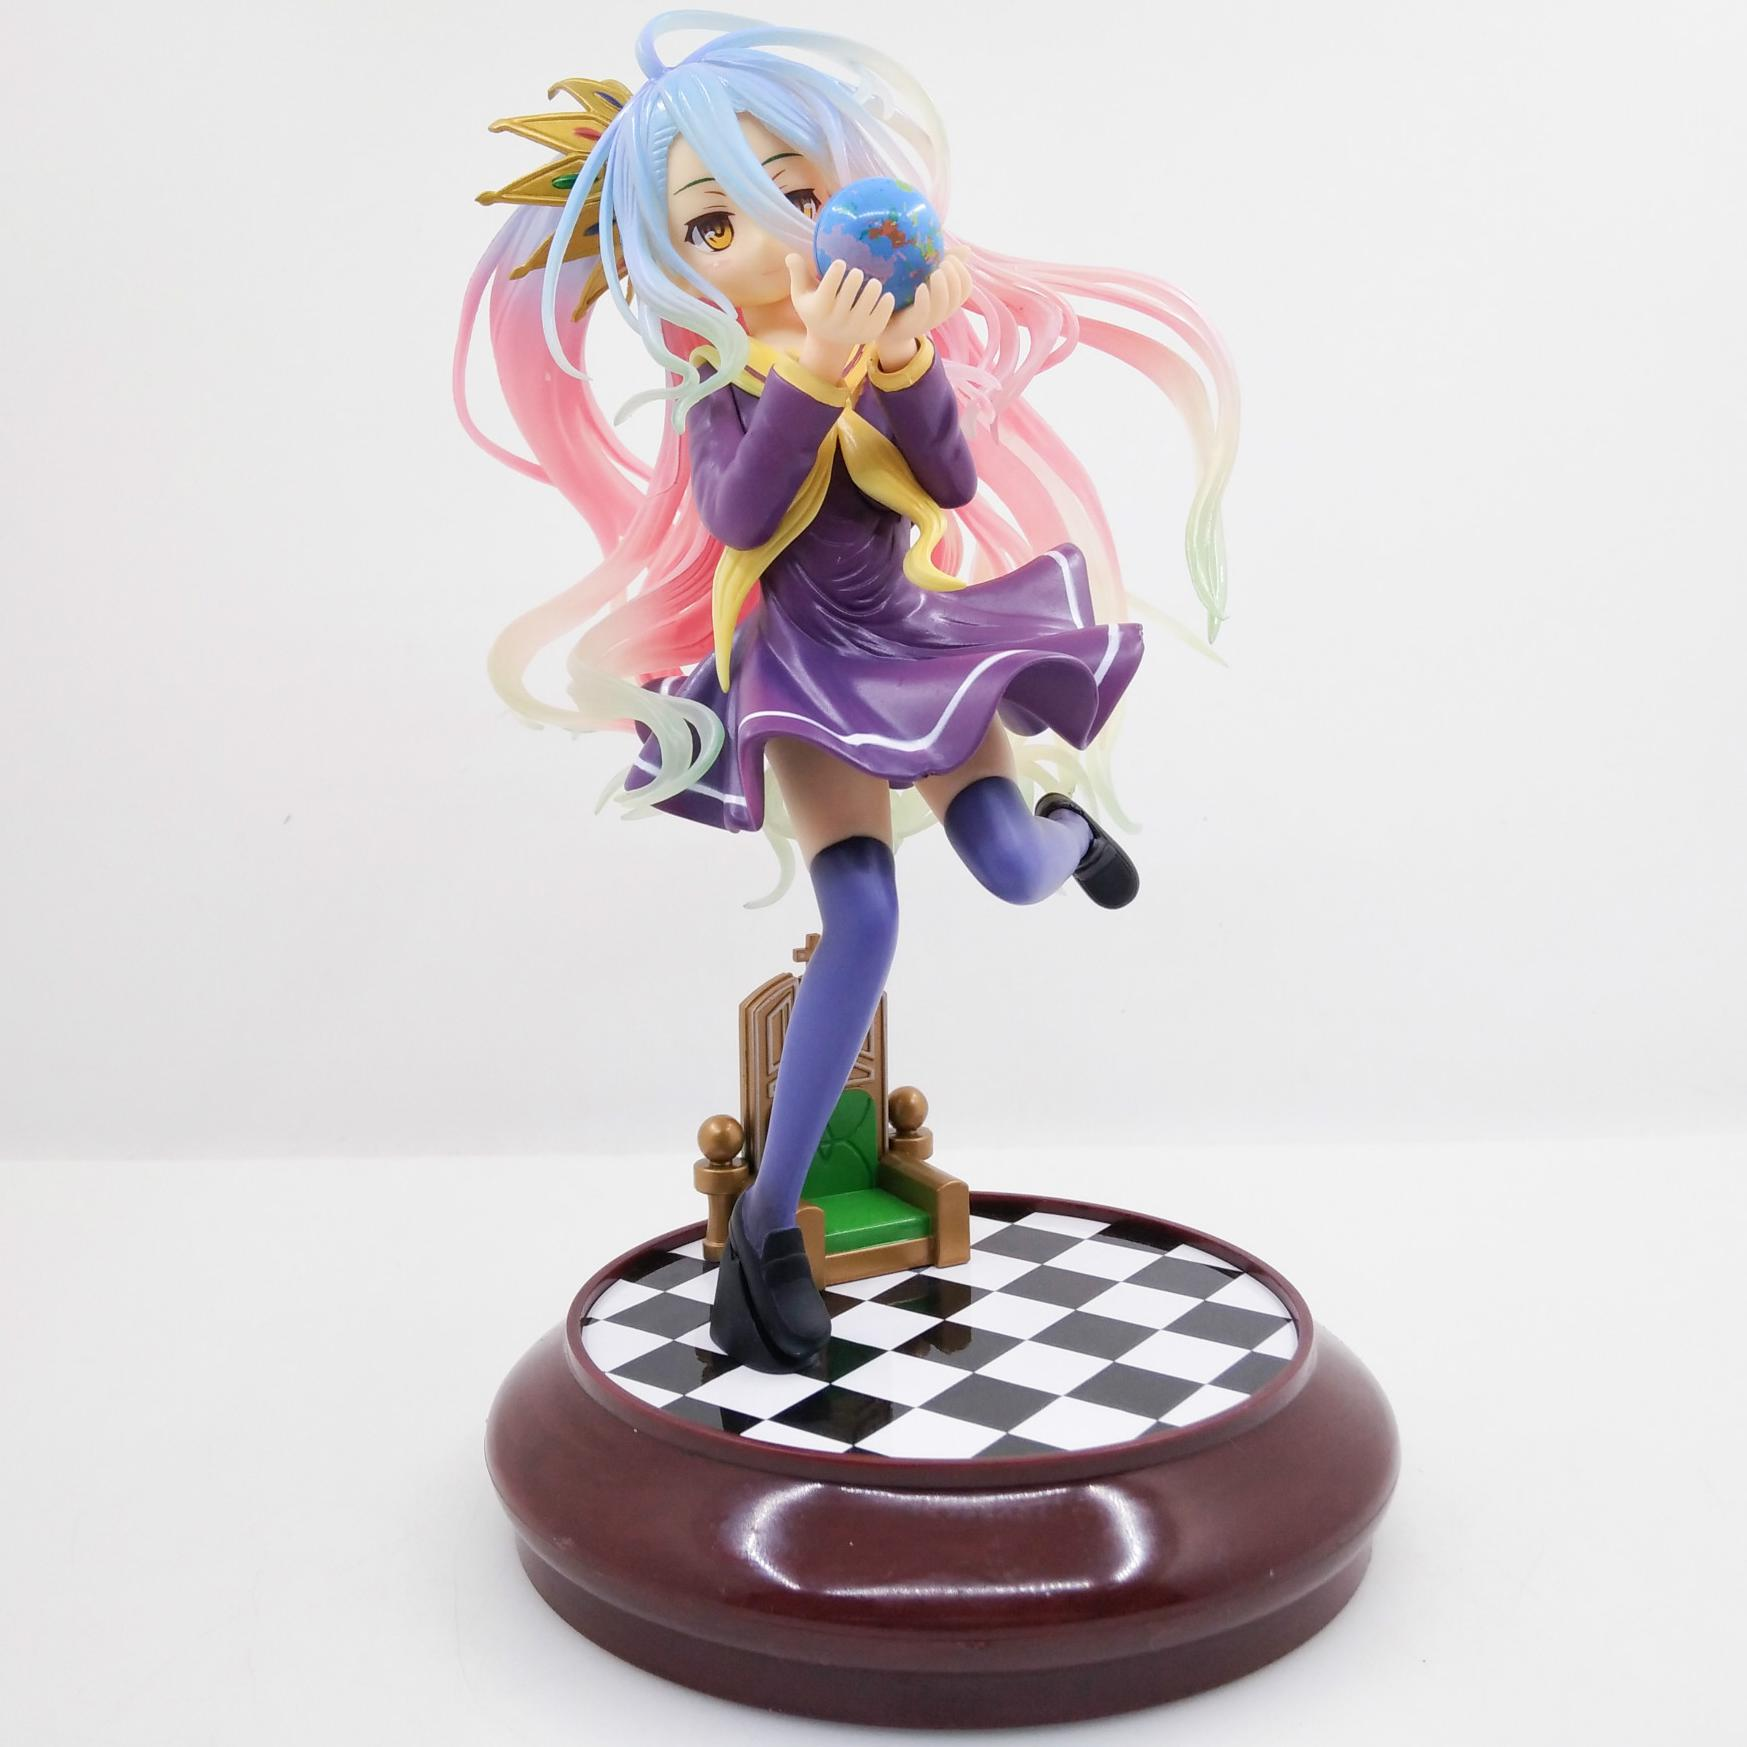 Yotsunoha Heroine 20cm Anime No Game No Life Shiro Game Of Life Painted Second Generation 1/7 Scale Pvc Action Figure ModeYotsunoha Heroine 20cm Anime No Game No Life Shiro Game Of Life Painted Second Generation 1/7 Scale Pvc Action Figure Mode